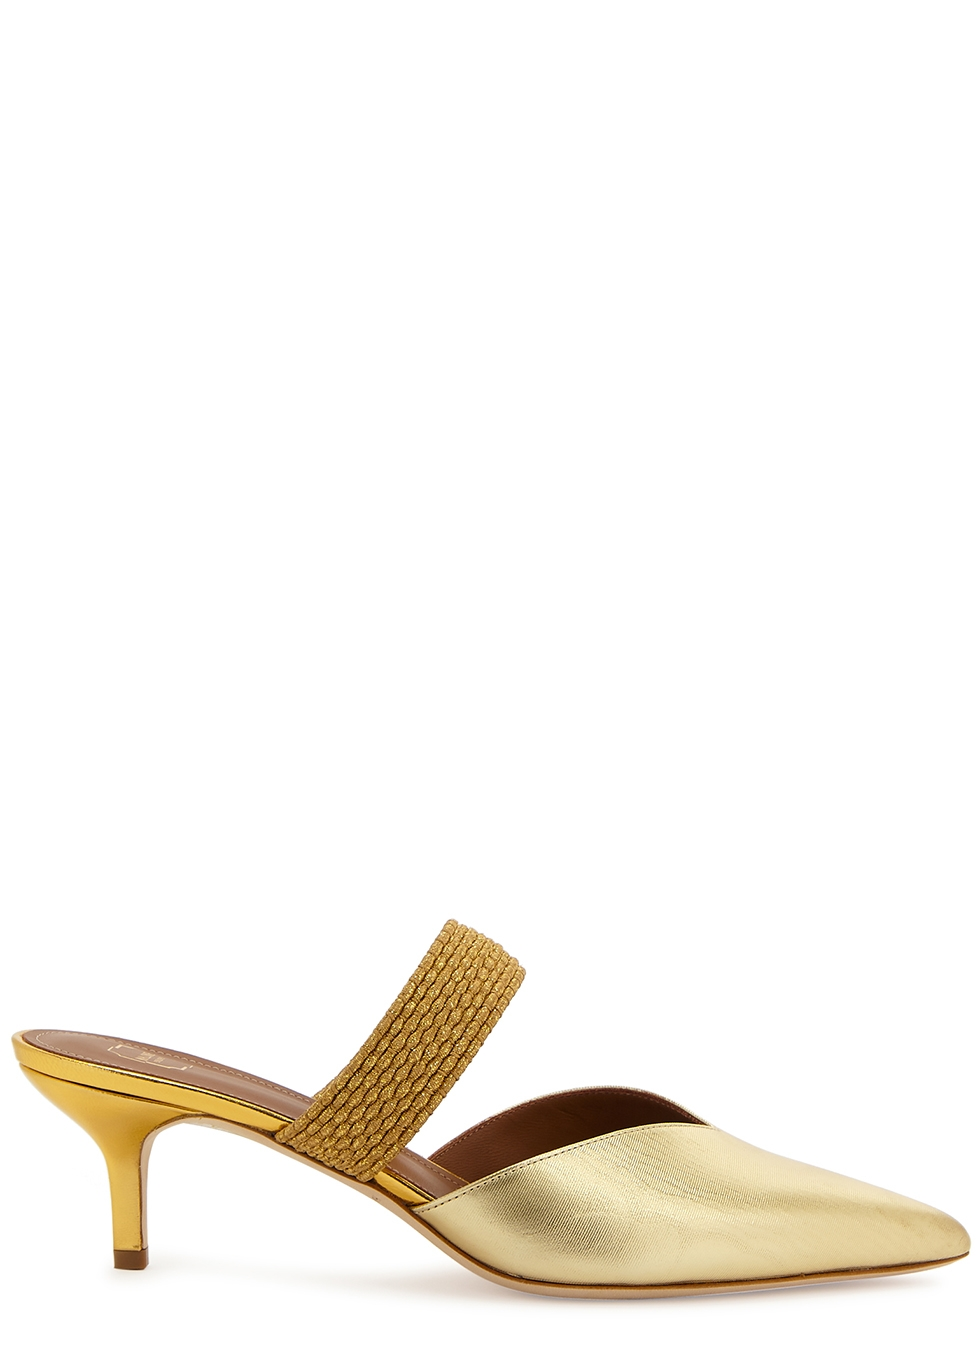 Maisie 65 gold leather mules